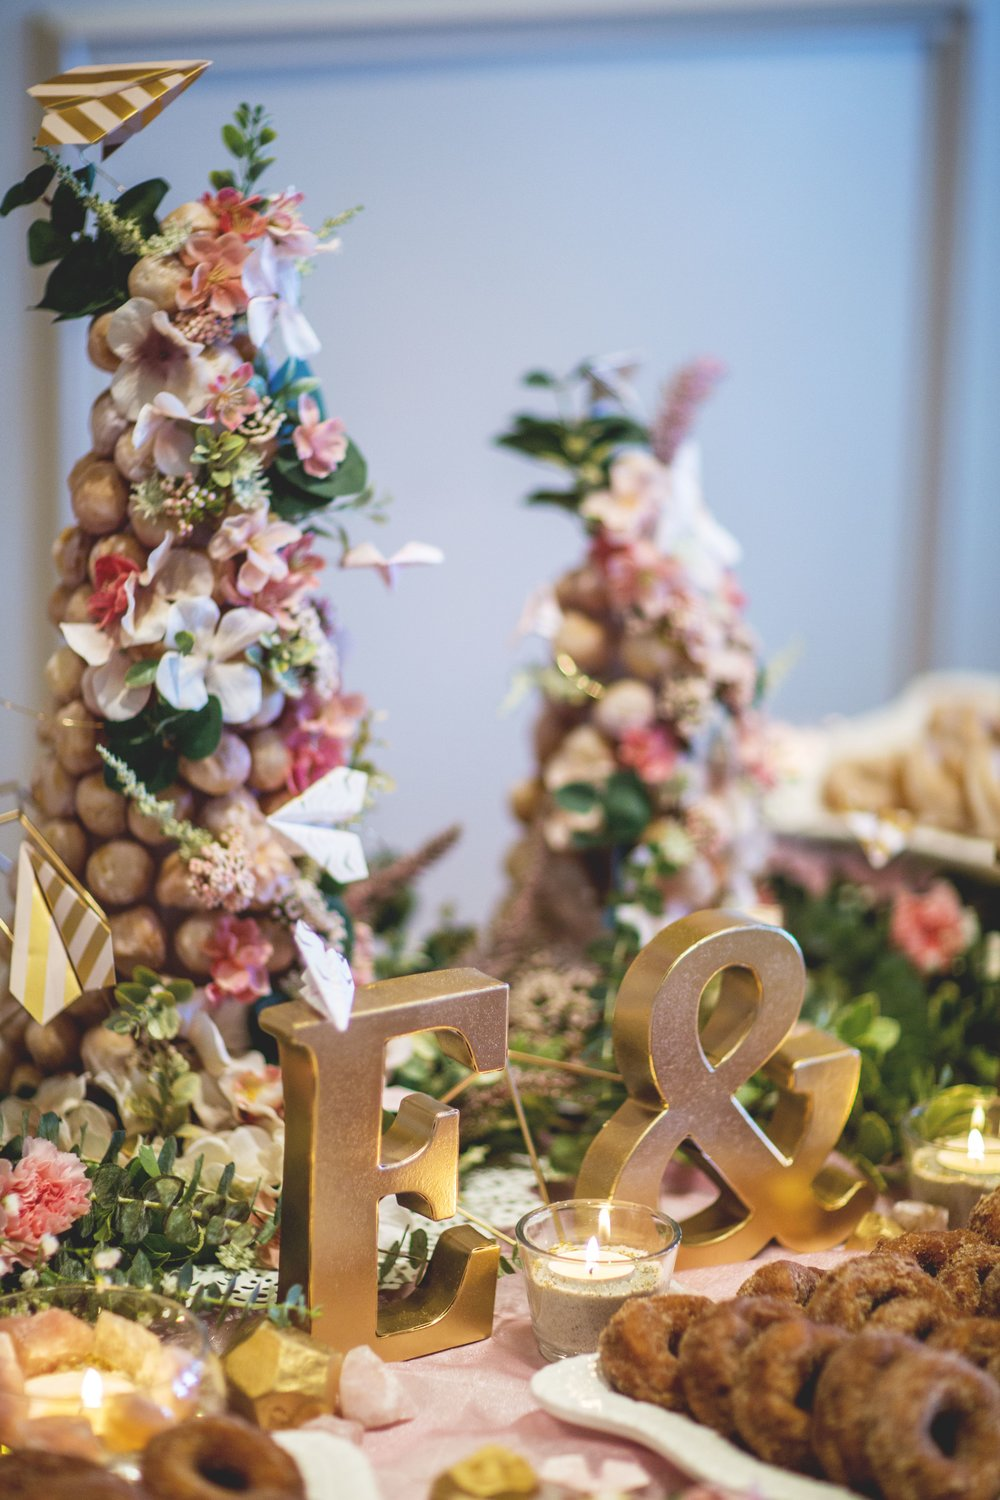 6. - If you do not wish to have a wedding cake at the reception, some other fun options are donut bars, macaroons, cake pops, cupcakes, or a small cake/ pie with a combination of any of the above! The options are limitless.